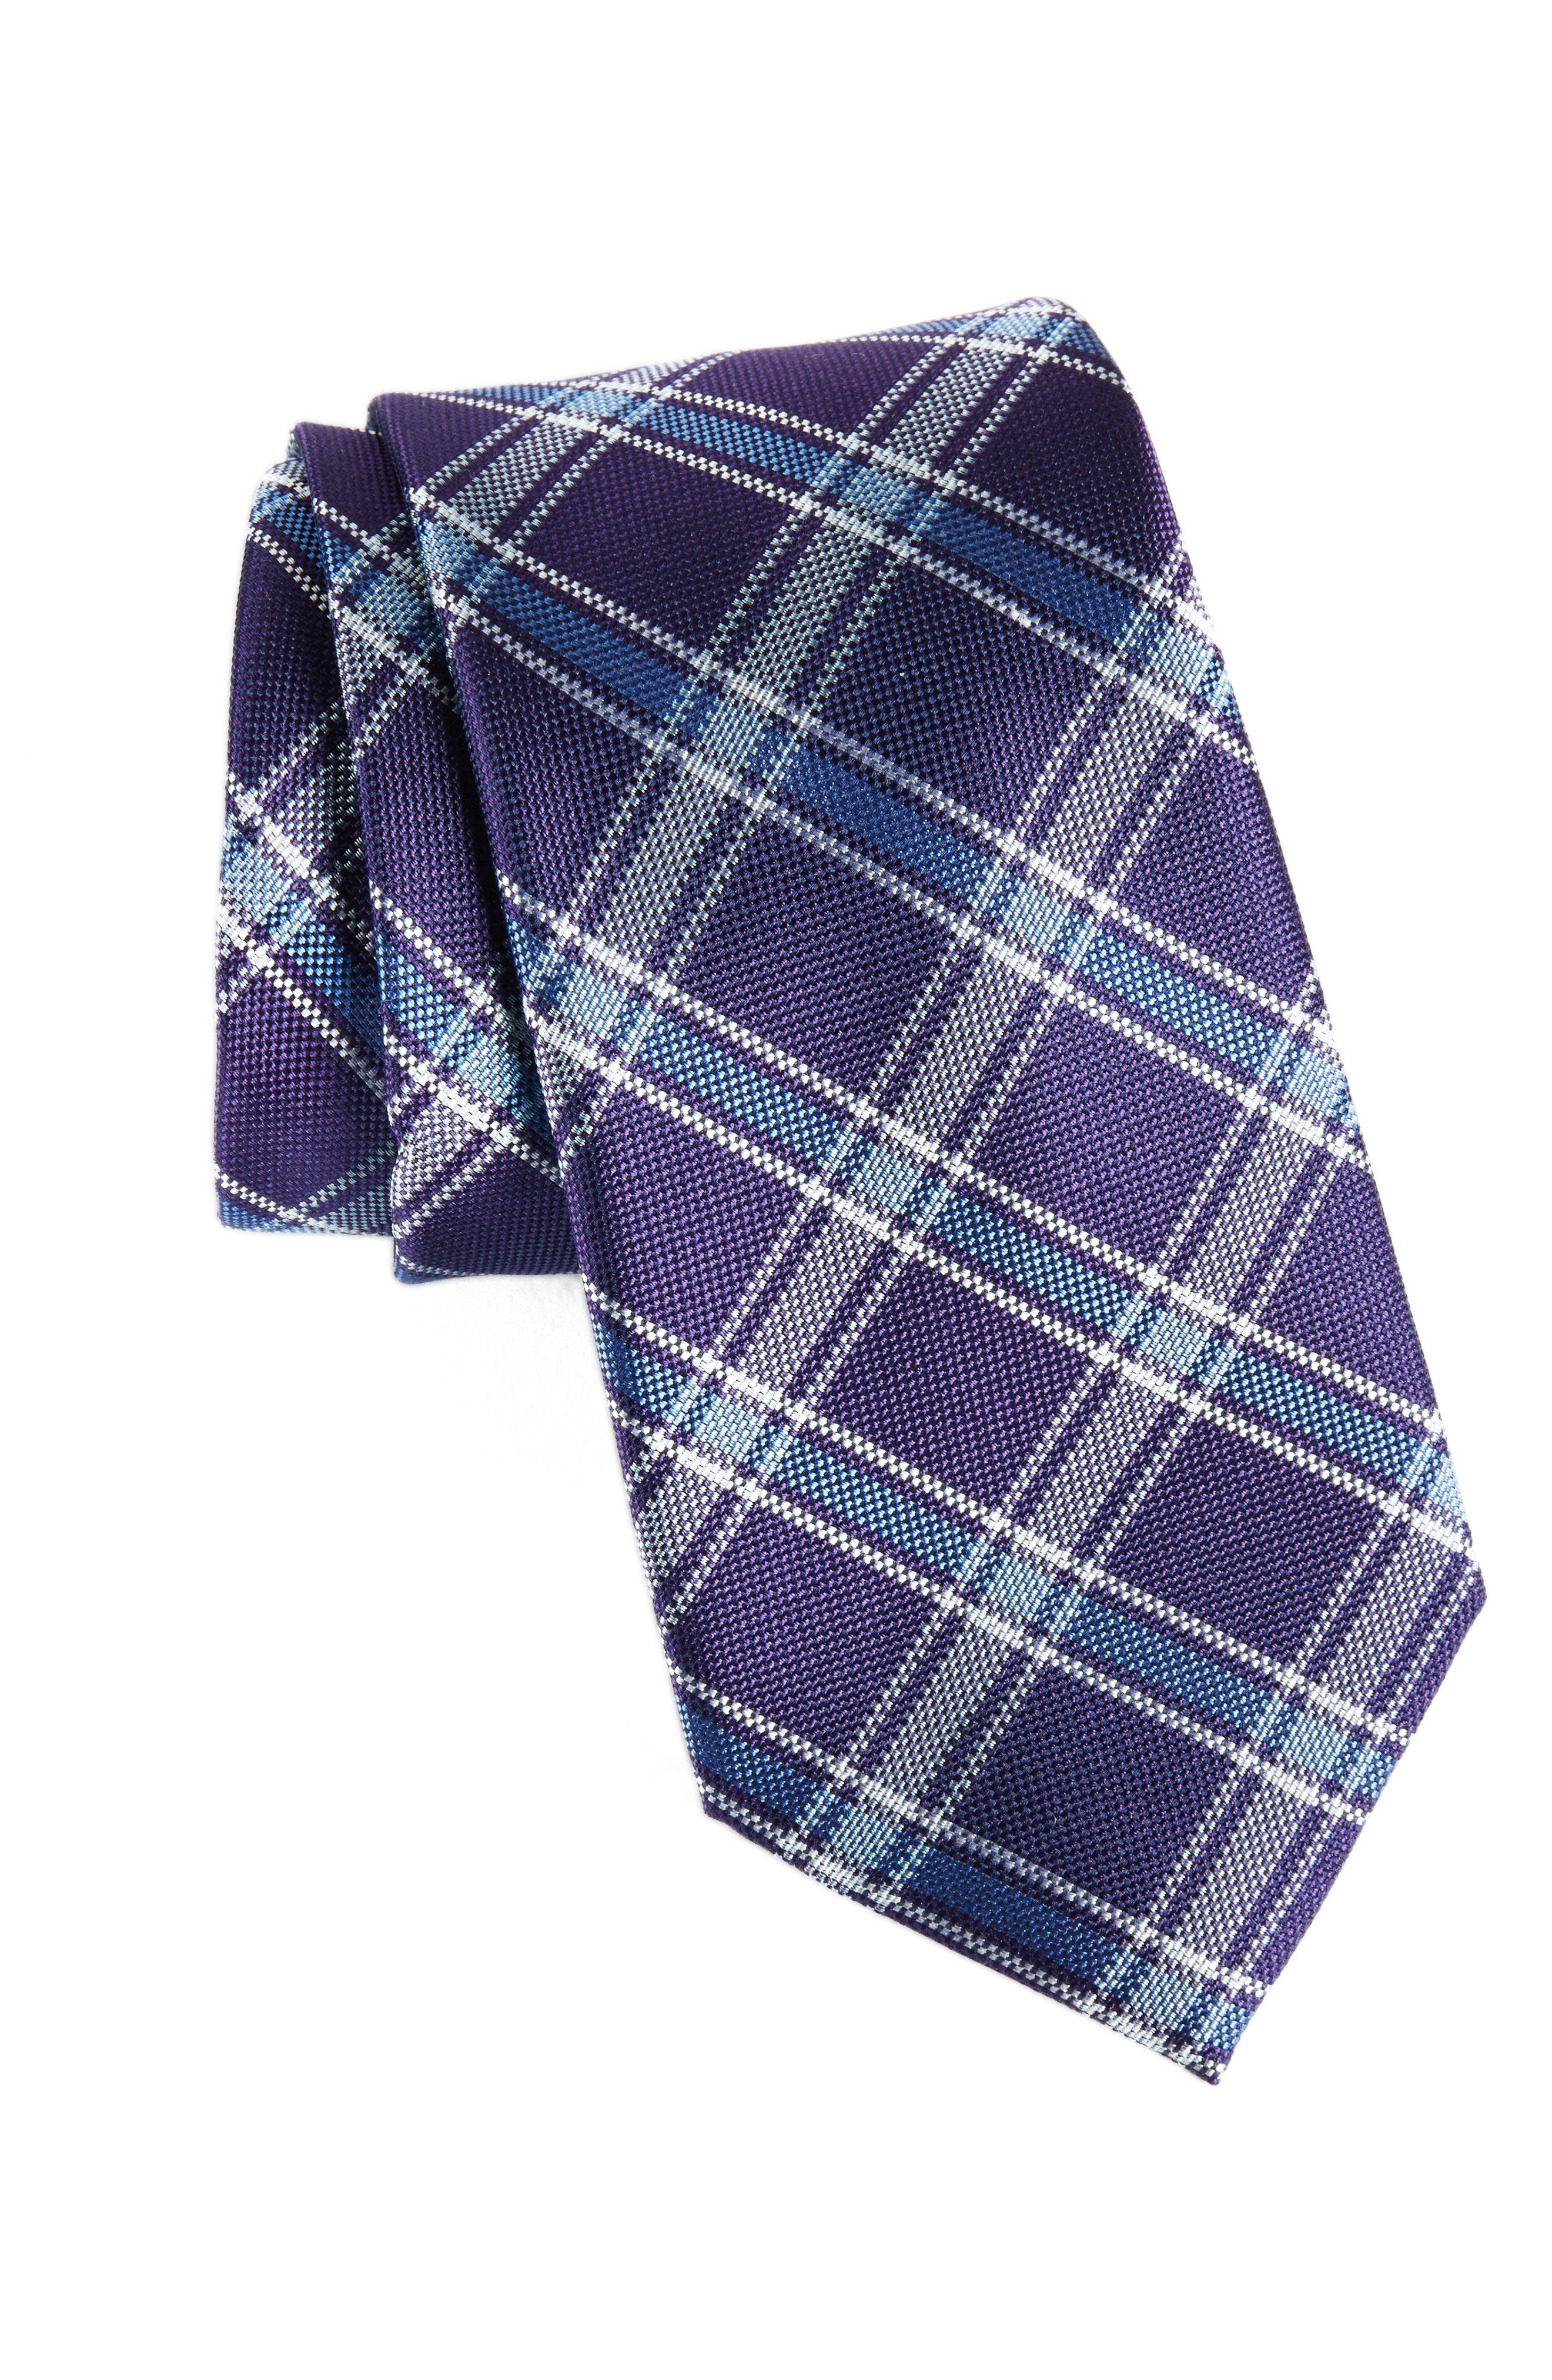 Alternate Image 1 Selected - Nordstrom Men's Shop Oxford Plaid Silk Tie (X-Long)